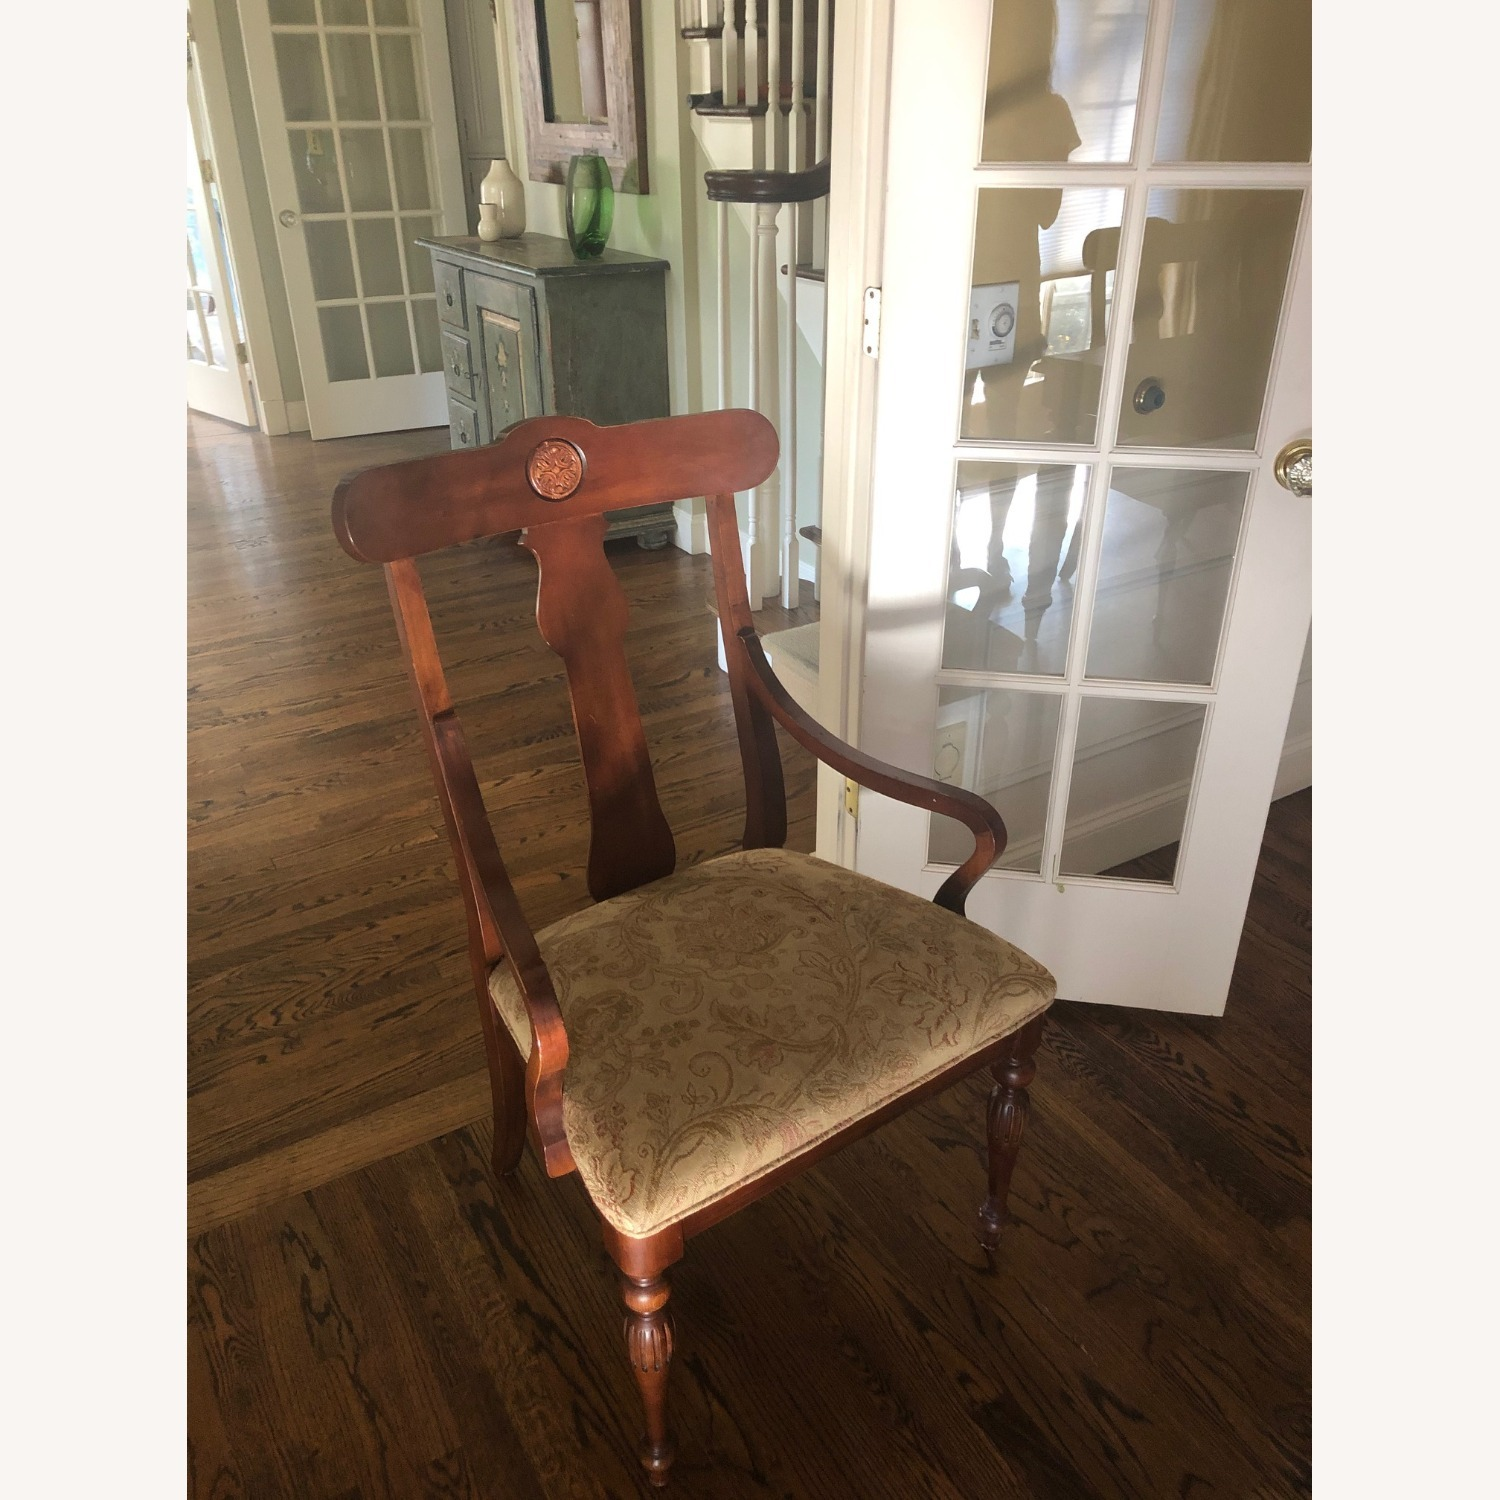 Ethan Allen Dining Room Chairs - image-2